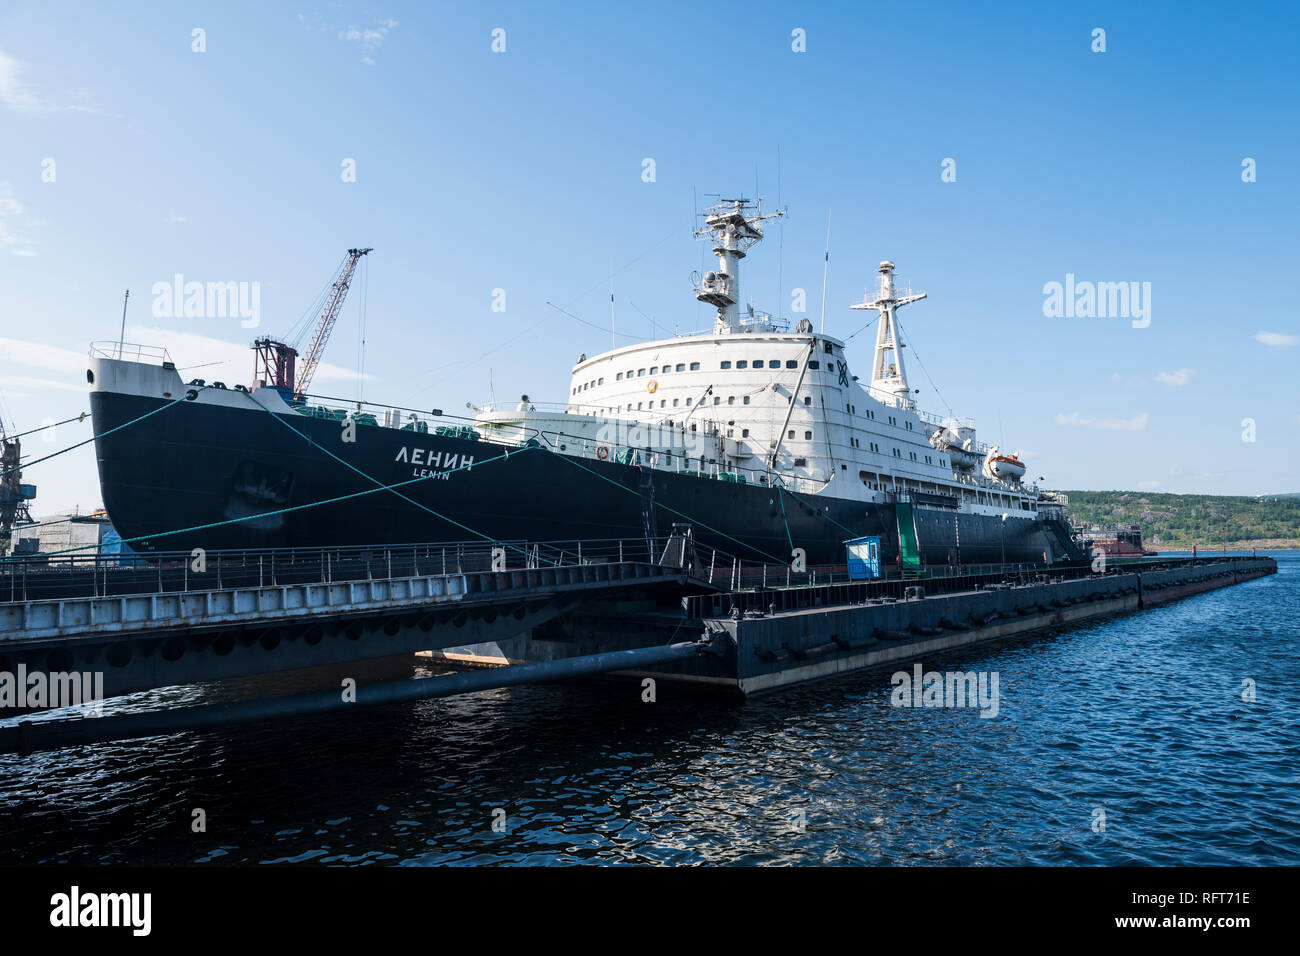 Lenin, first nuclear powered icebreaker in the world, Murmansk, Russia, Europe - Stock Image